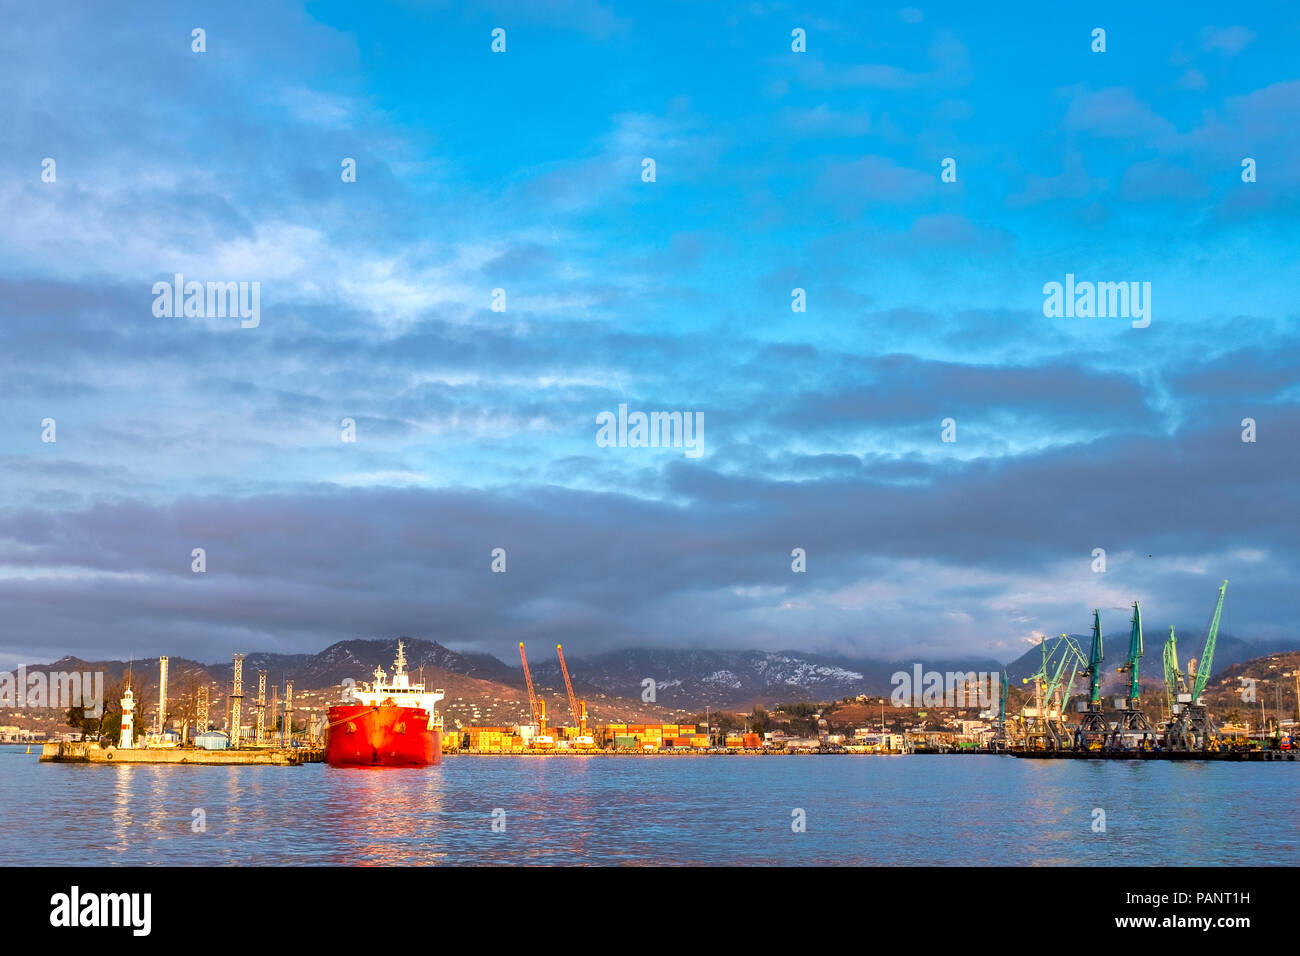 Batumi sea port at sunset, Batumi, Georgia - Stock Image